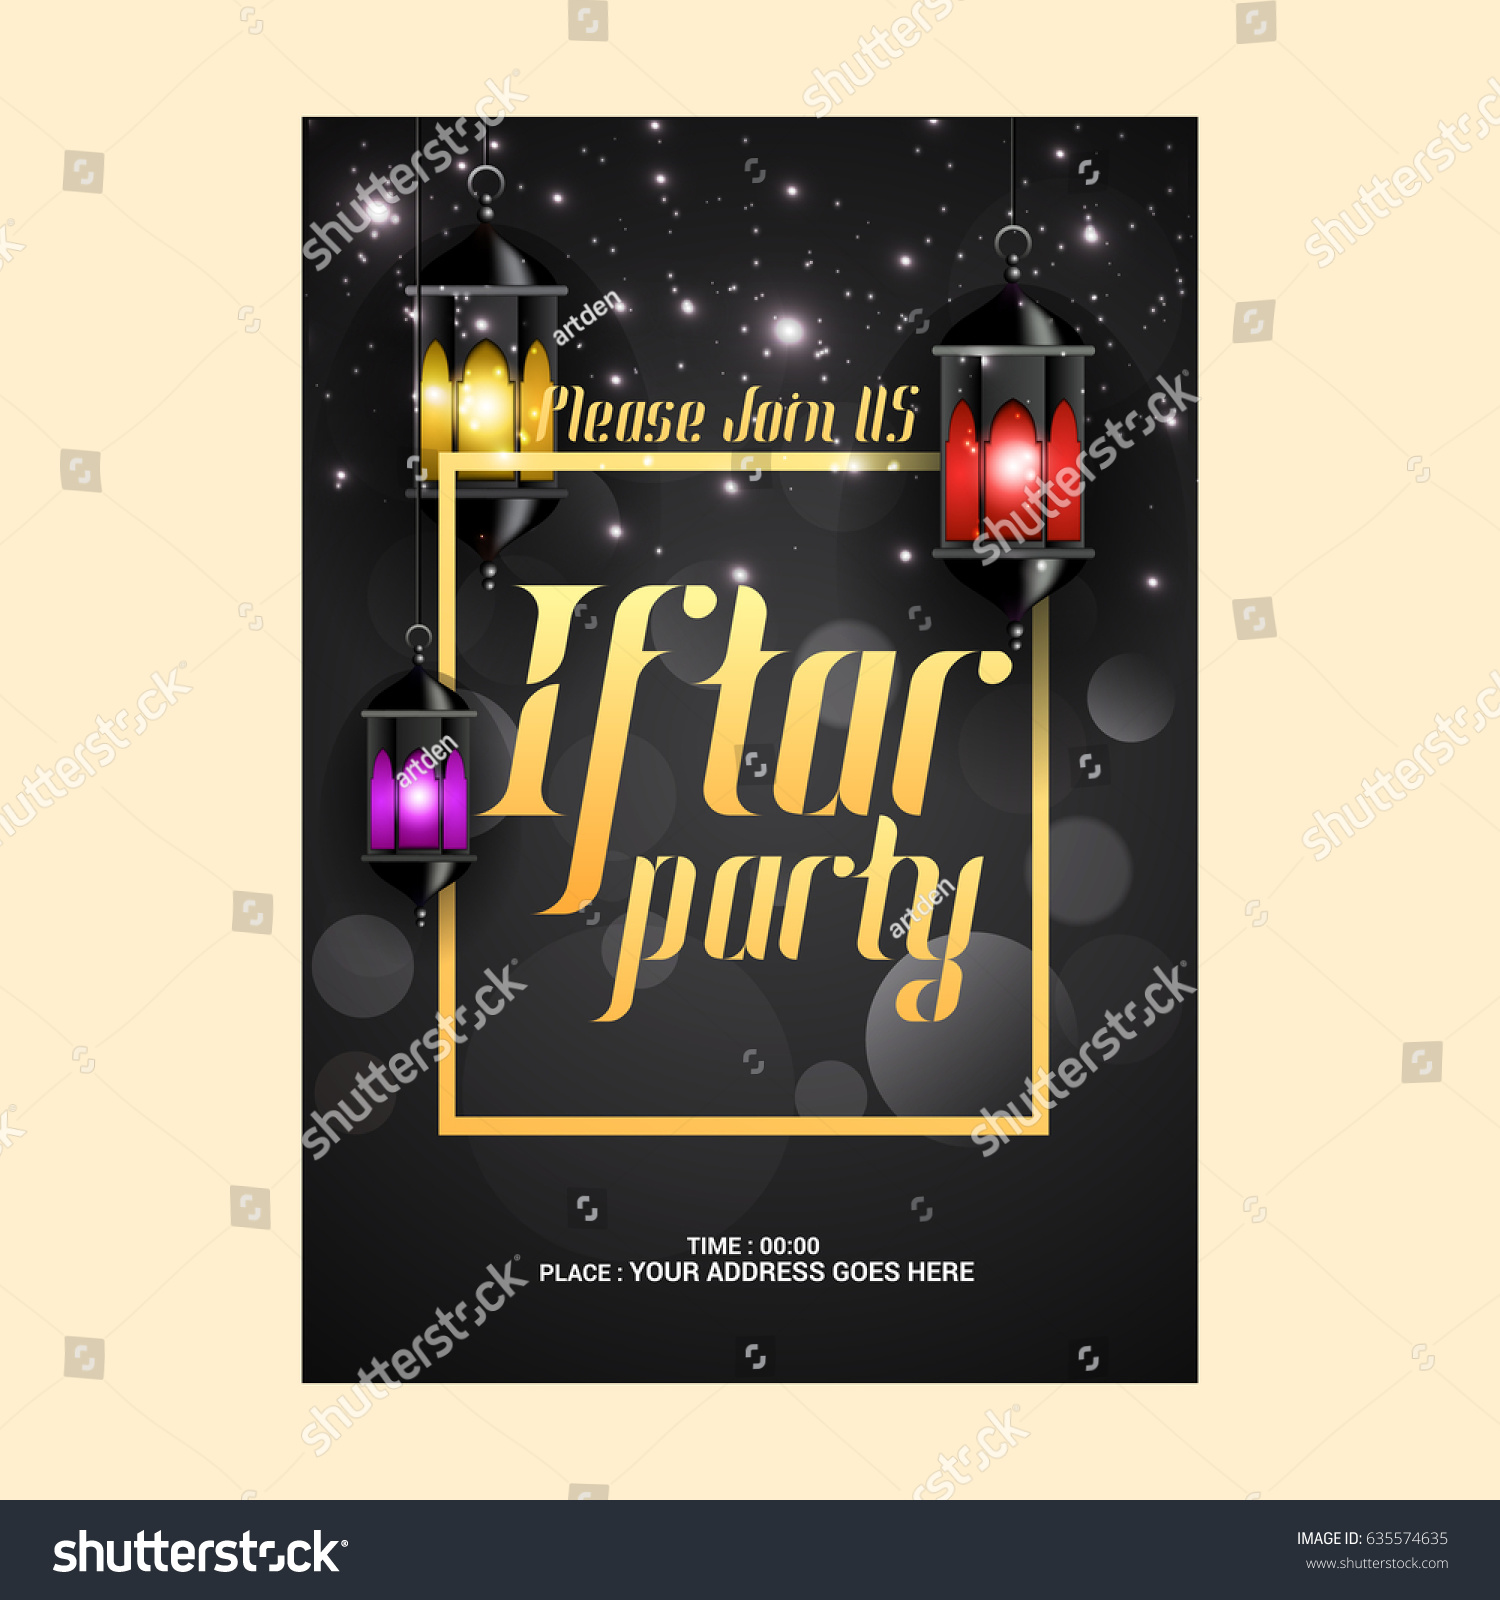 creative abstract party invitation flyer iftar のベクター画像素材